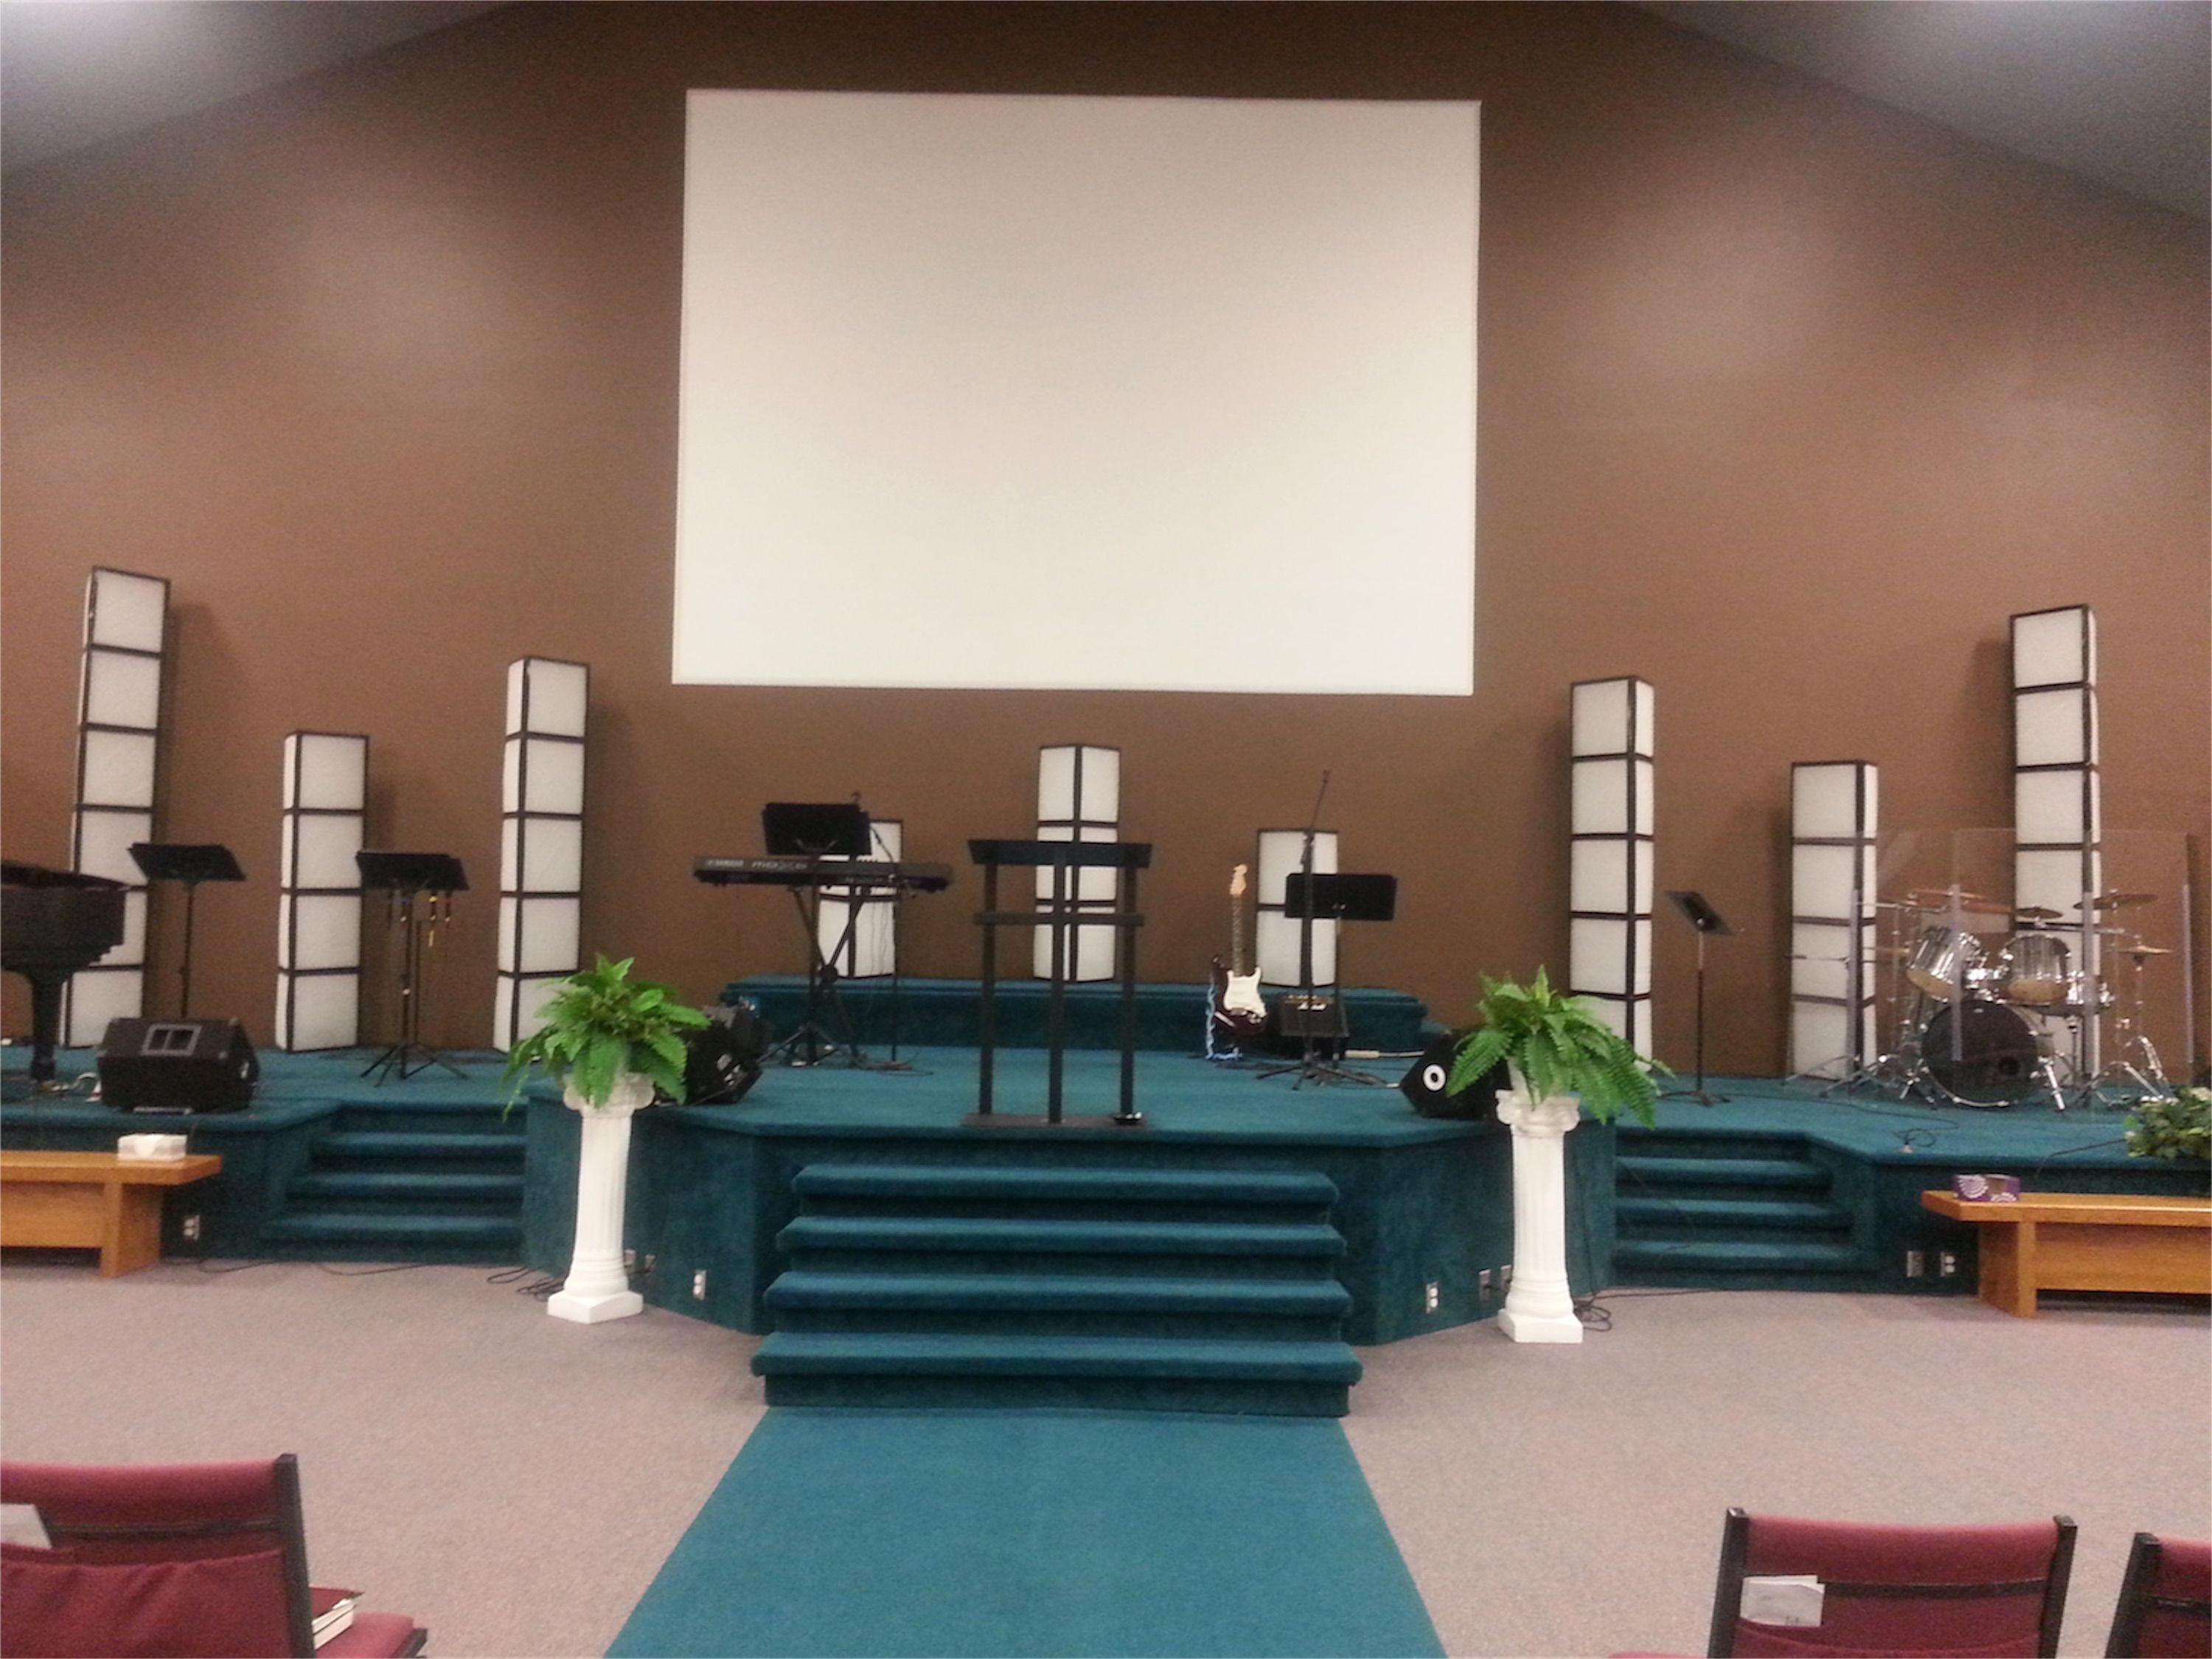 Tri Filters Church stage design, Air filter light boxes